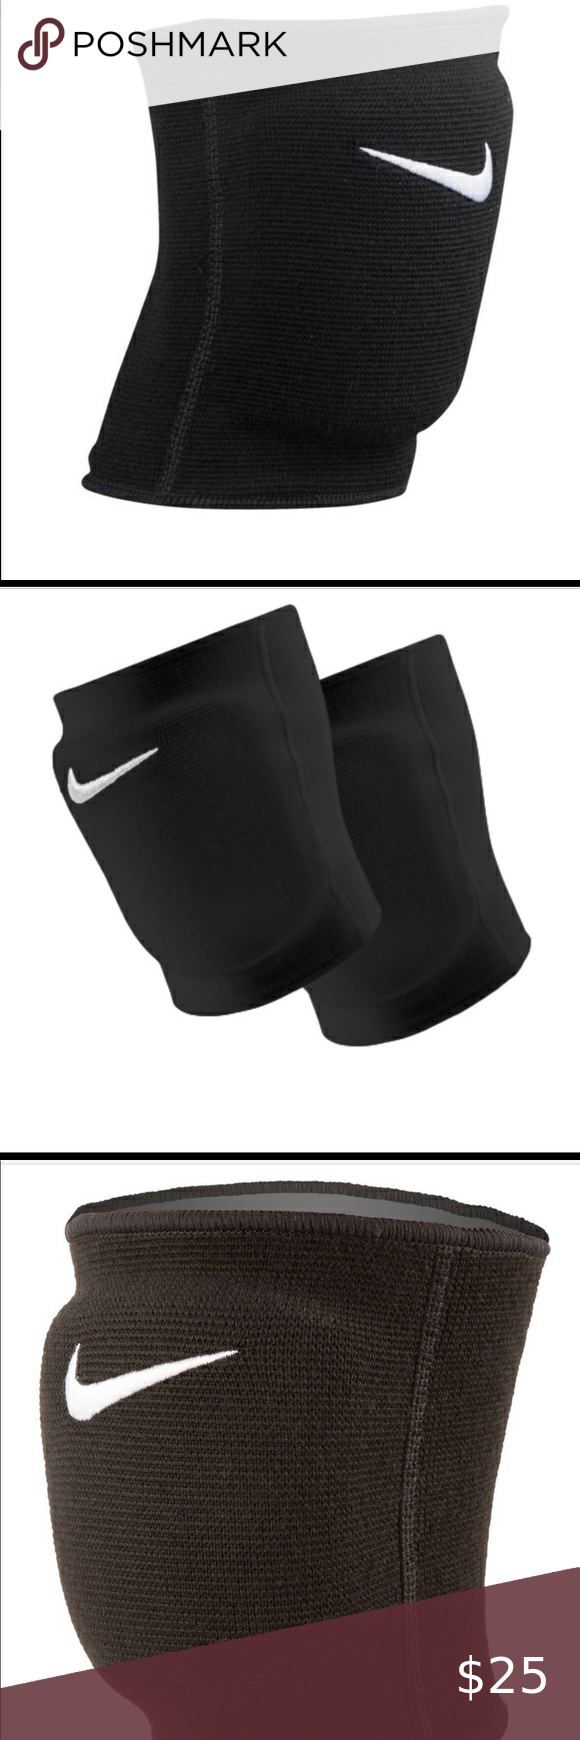 Nike Unisex Essential Volleyball Knee Pads M L In 2020 Volleyball Knee Pads Black Nikes Knee Pads